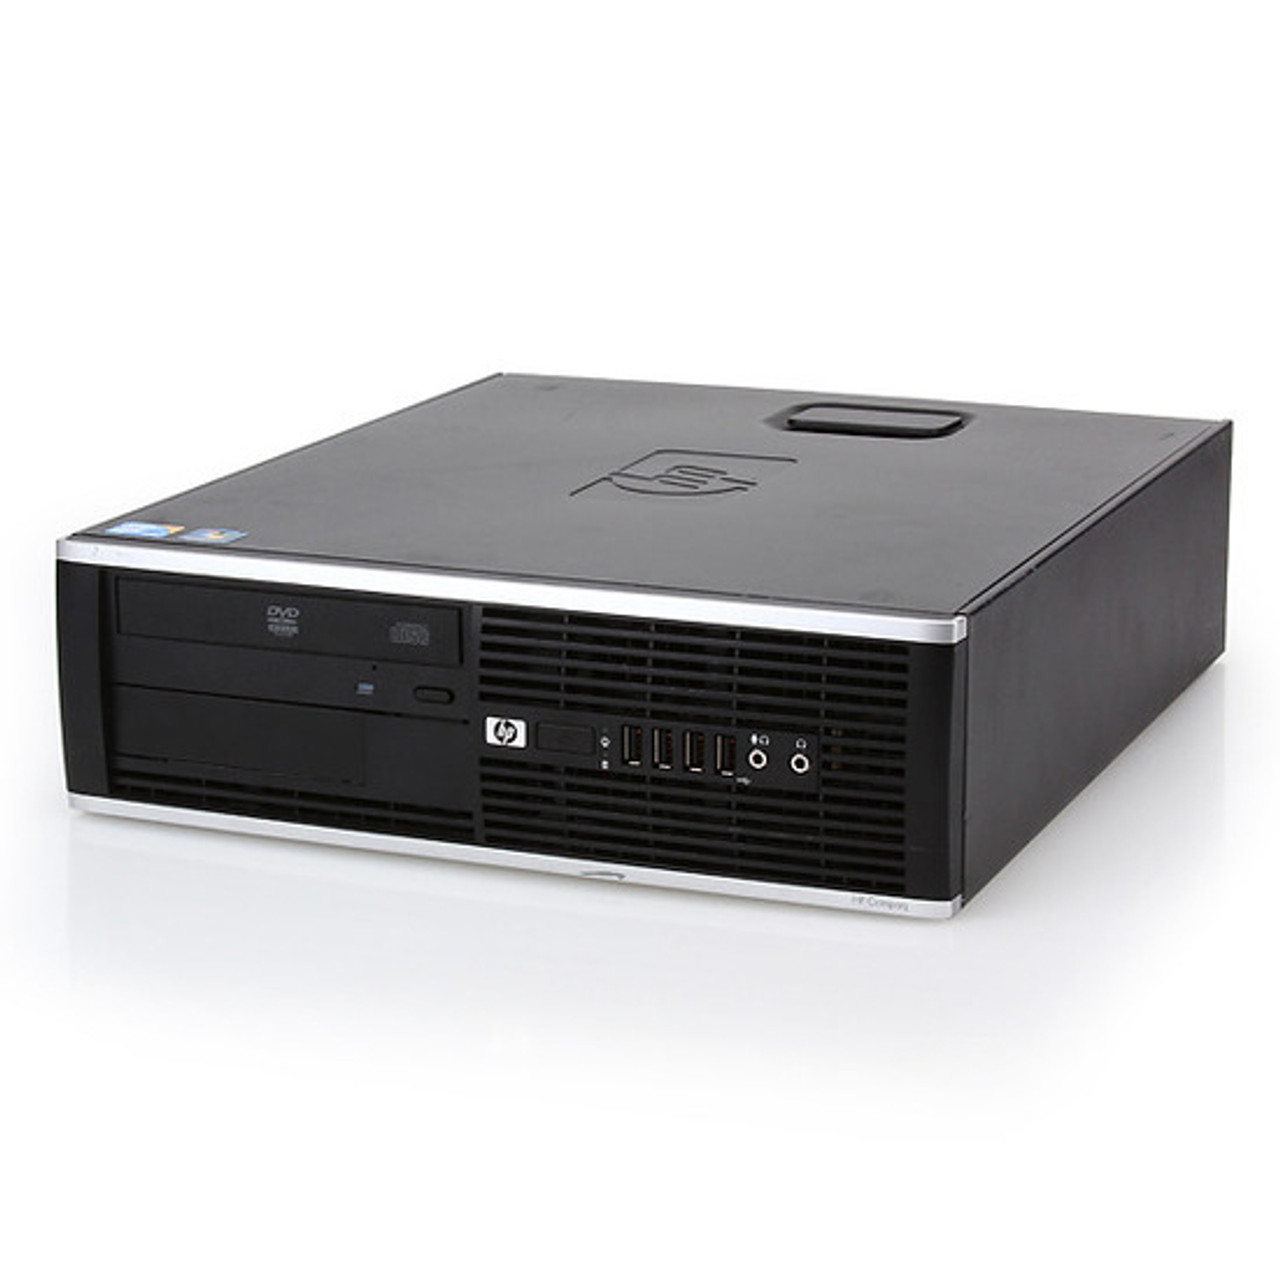 HP Compaq Elite 8100 SFF Core i5 3.2GHz, 4GB Ram, 160GB HDD, DVD-RW, Windows 7 Pro 64 Desktop Computer